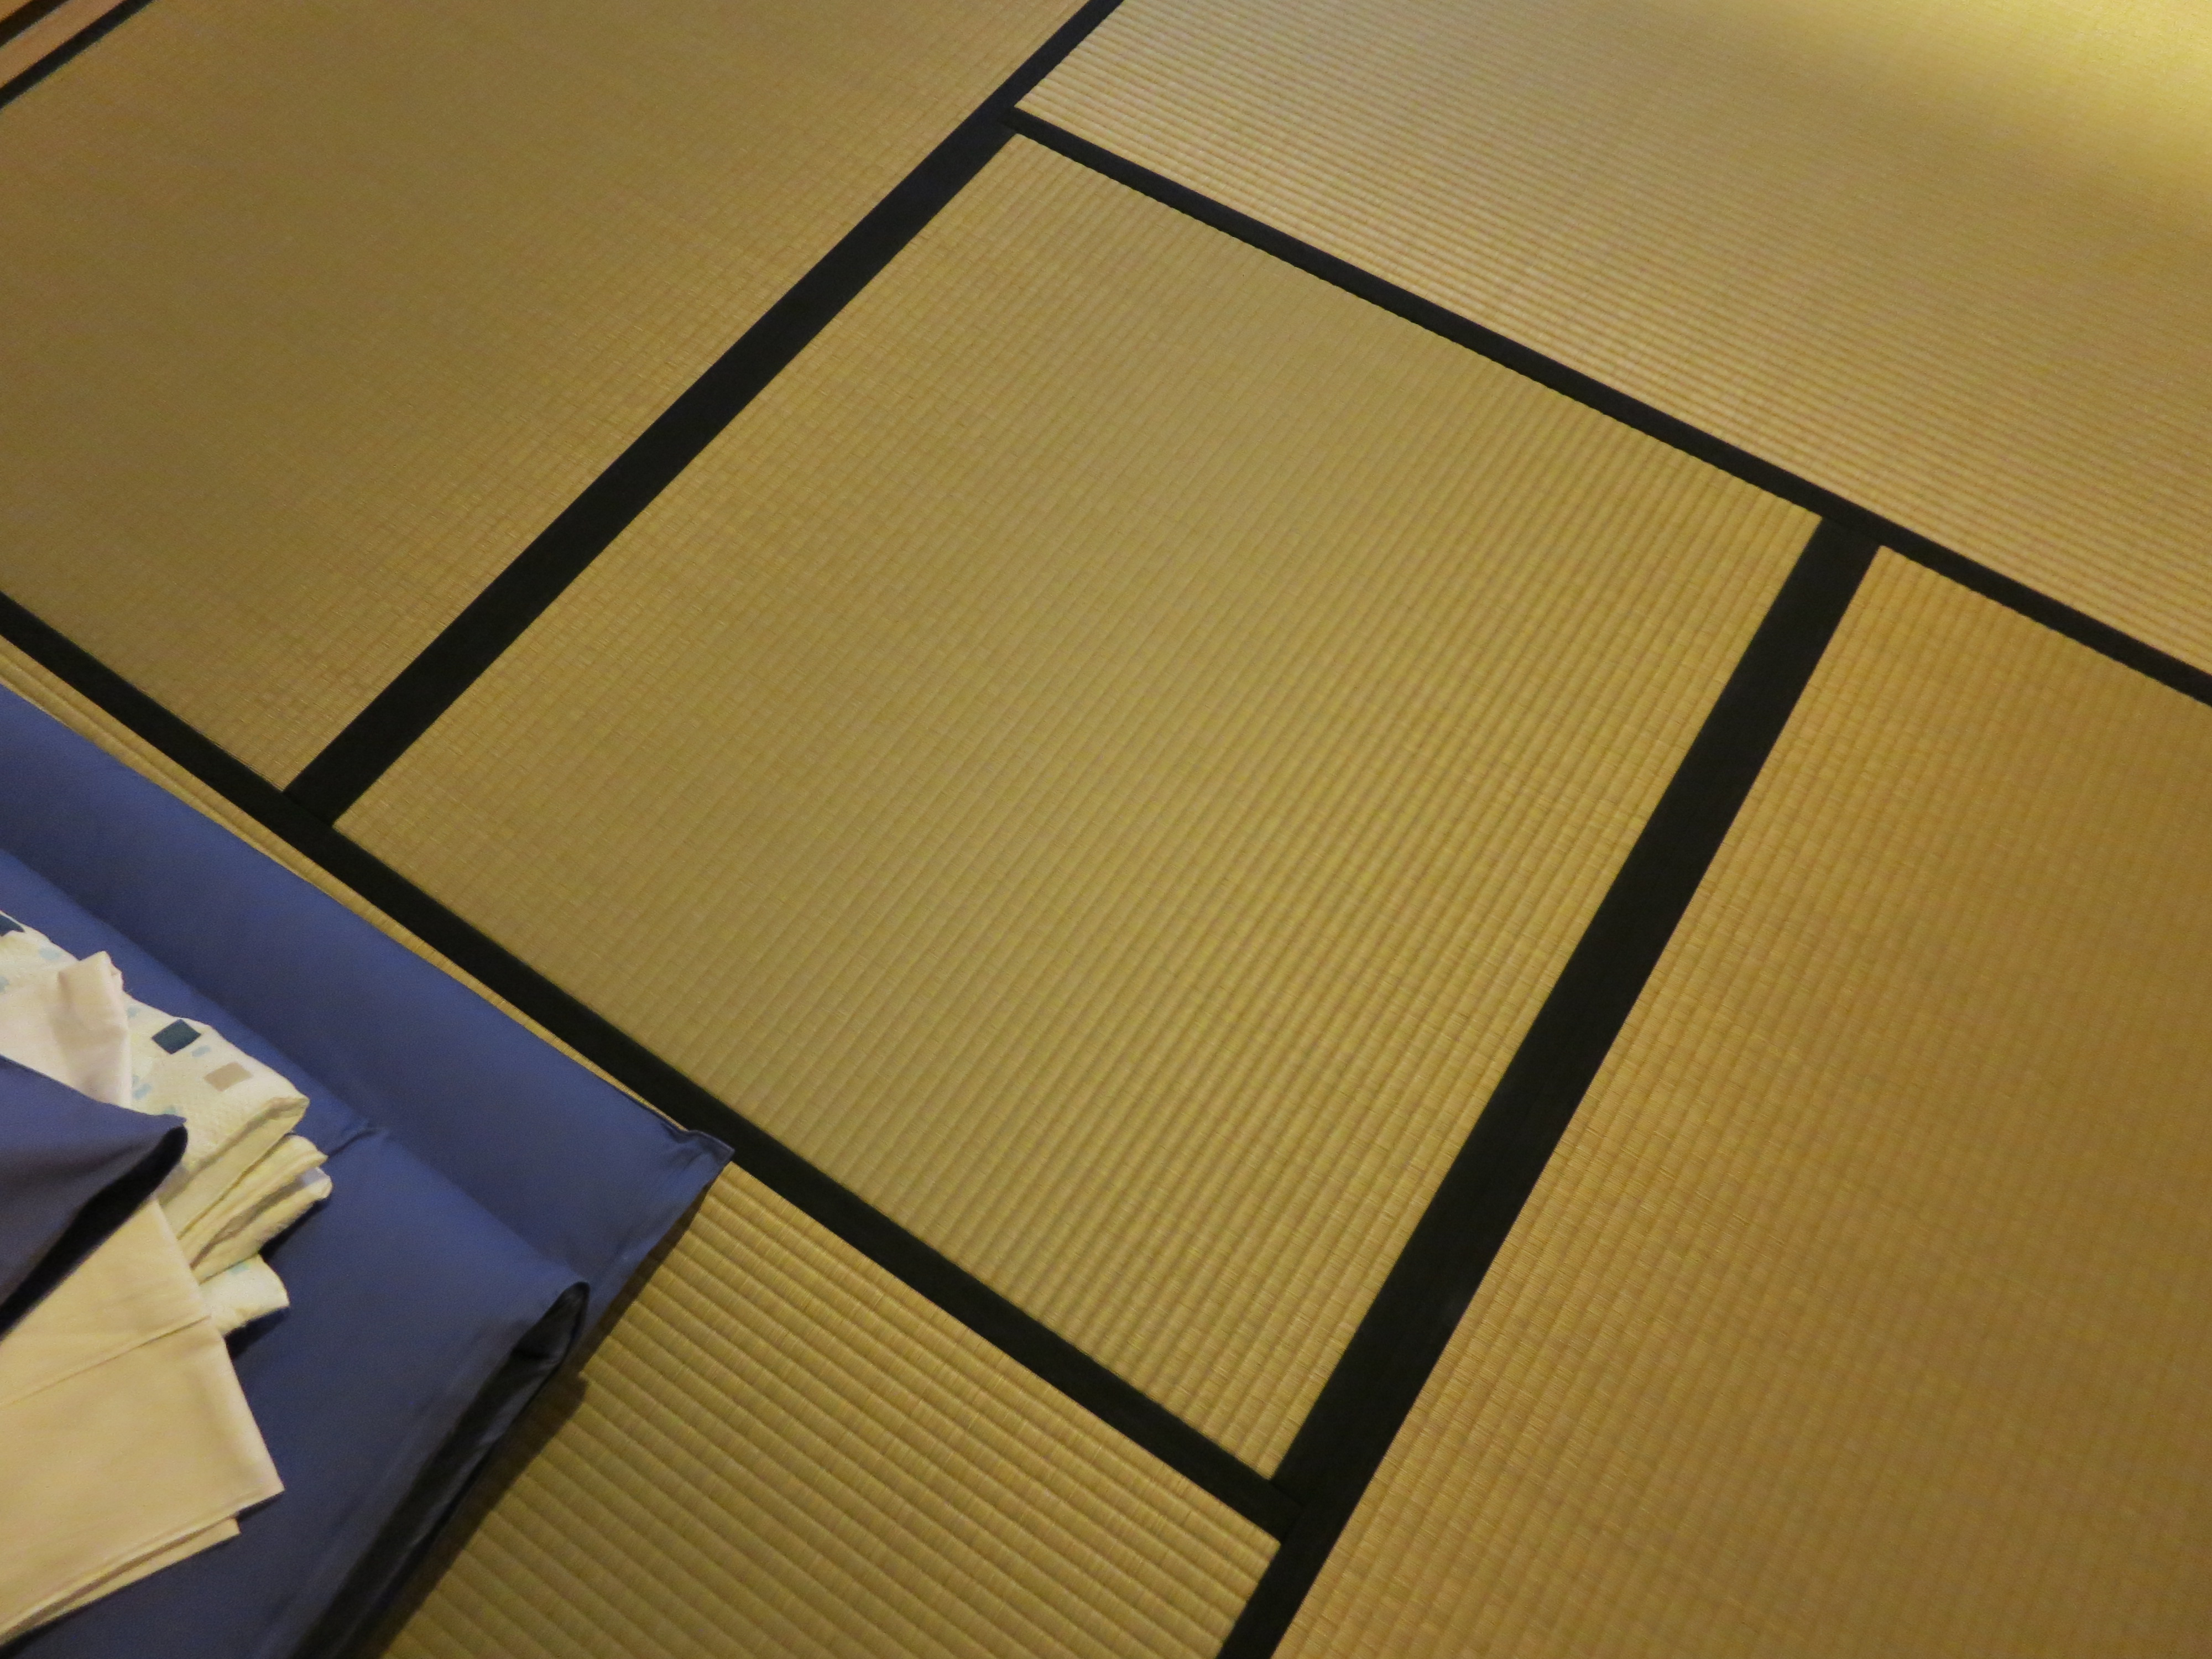 guesthouse sakuraya 4 4 5 tatami mat room temporarily lost. Black Bedroom Furniture Sets. Home Design Ideas